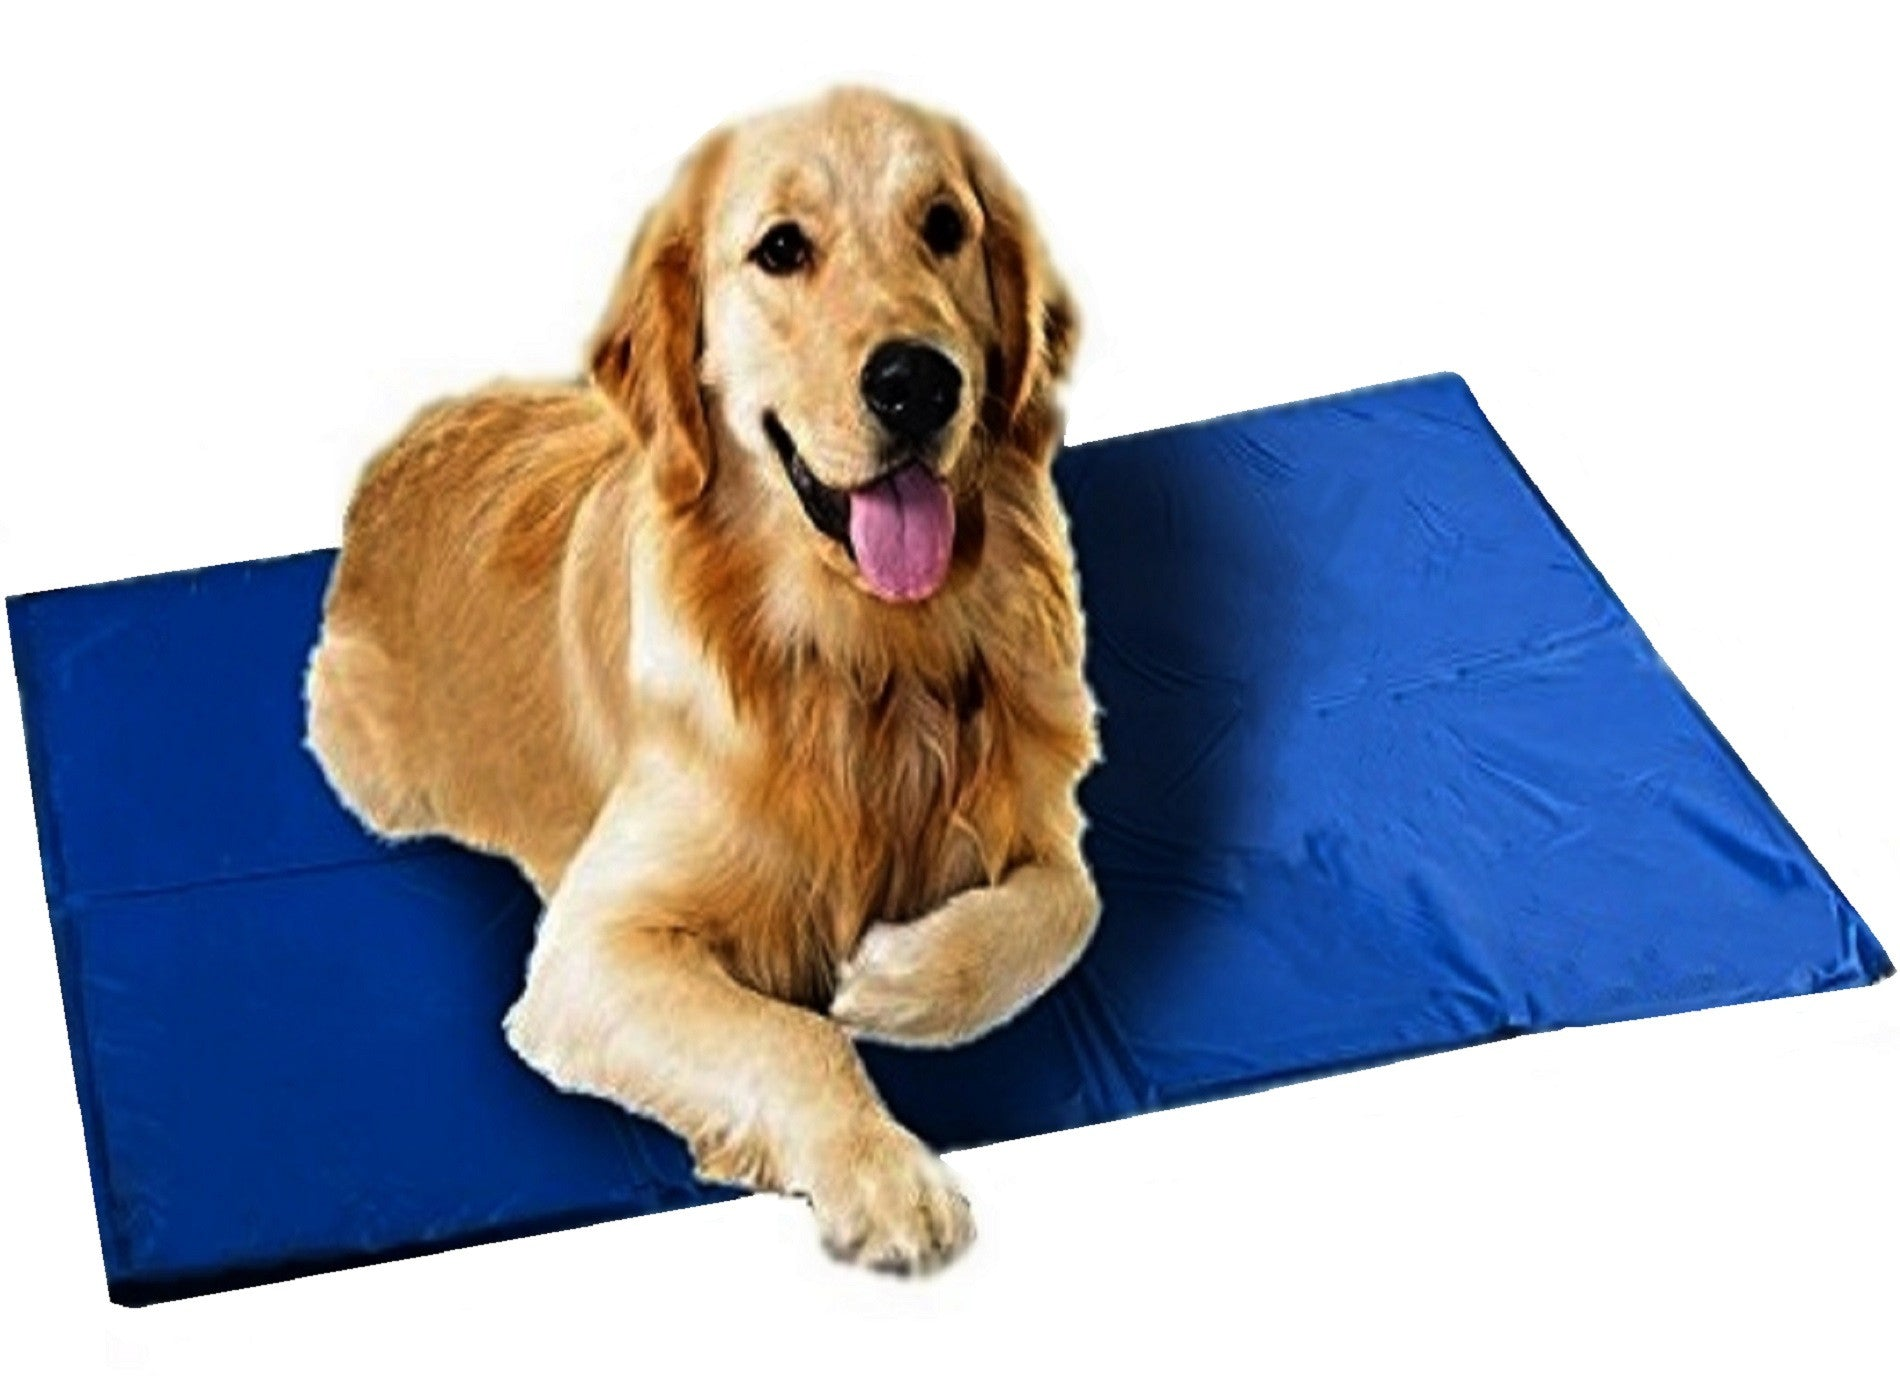 lvgmukazvicj cooling hot product china selling mats pet dog dogs mat pad for